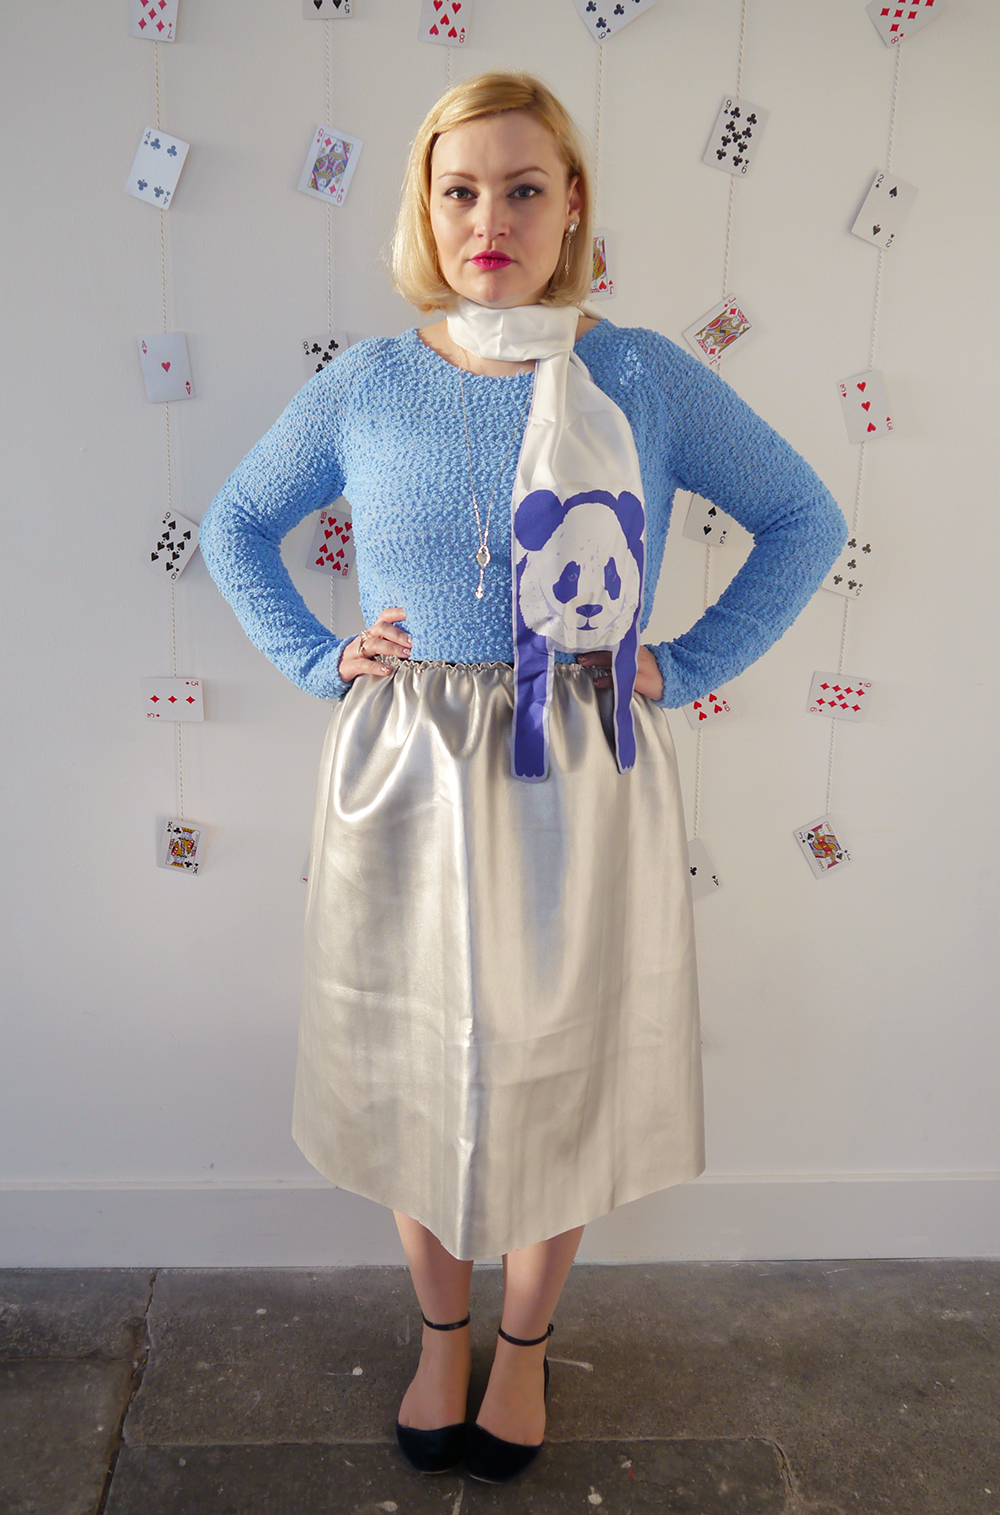 Alice in Wonderland, Karen Smith Jewellery, drink me, style inspiration, how to tie a hair bow, Cleo Ferin Mercury panda scarf, Scottish blogger, steampunk, DIY silver circle skirt